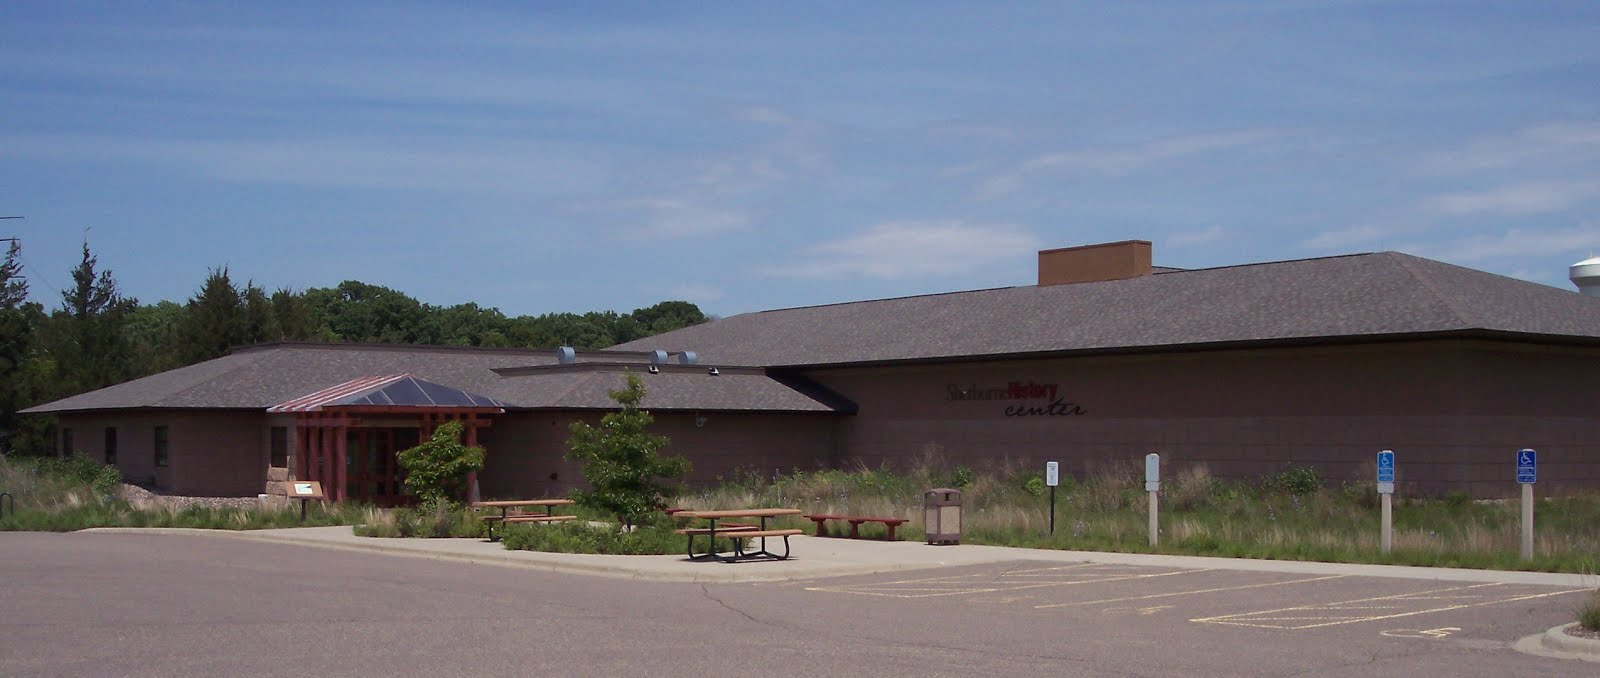 Sherburne History Center